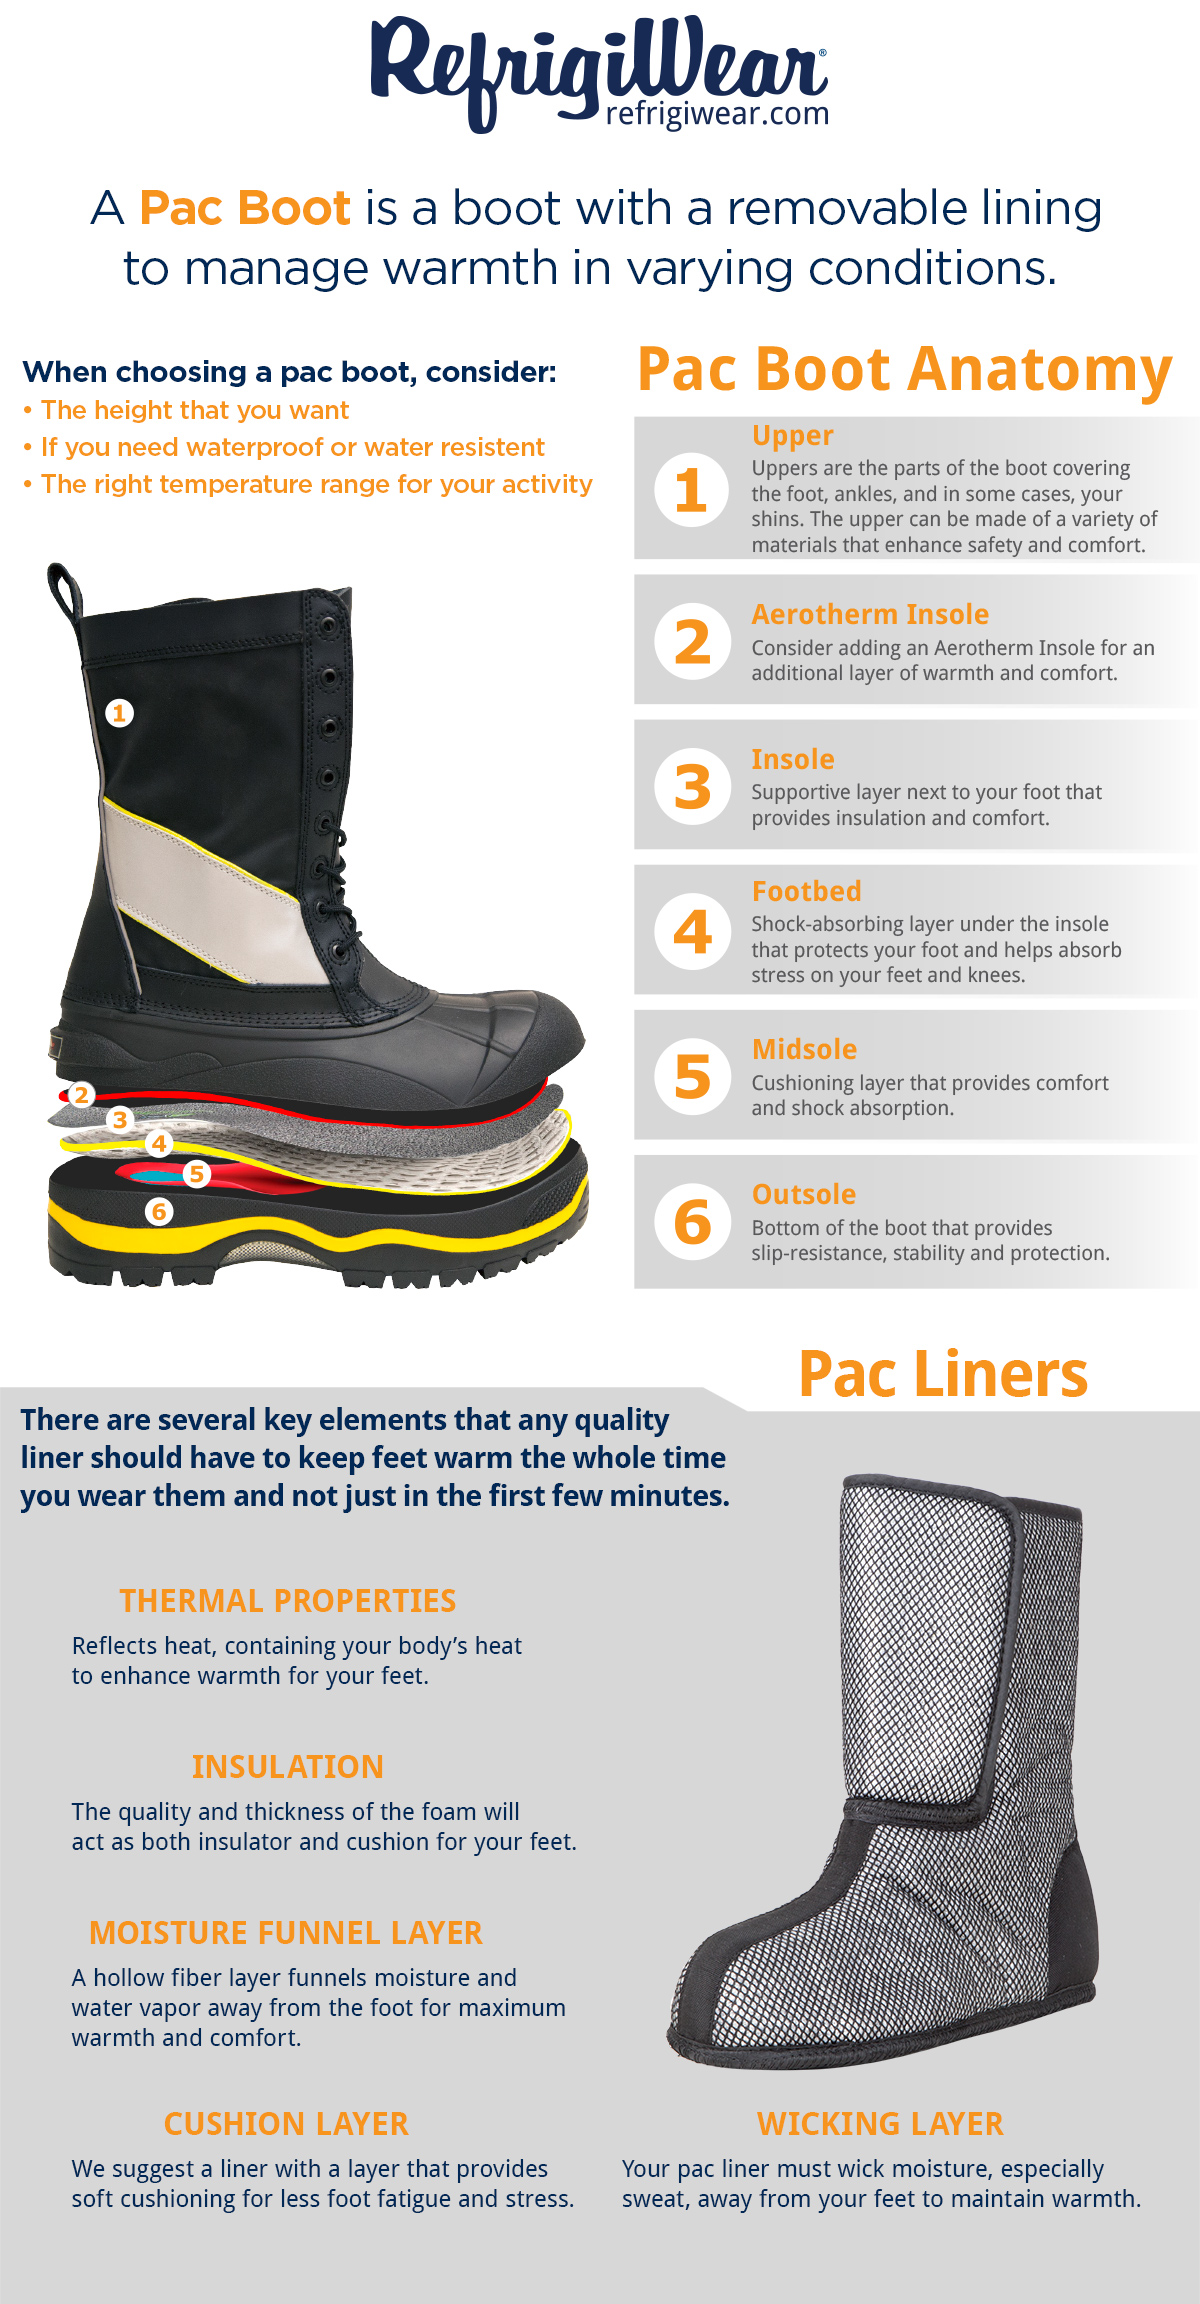 Anatomy of a Pac Boot